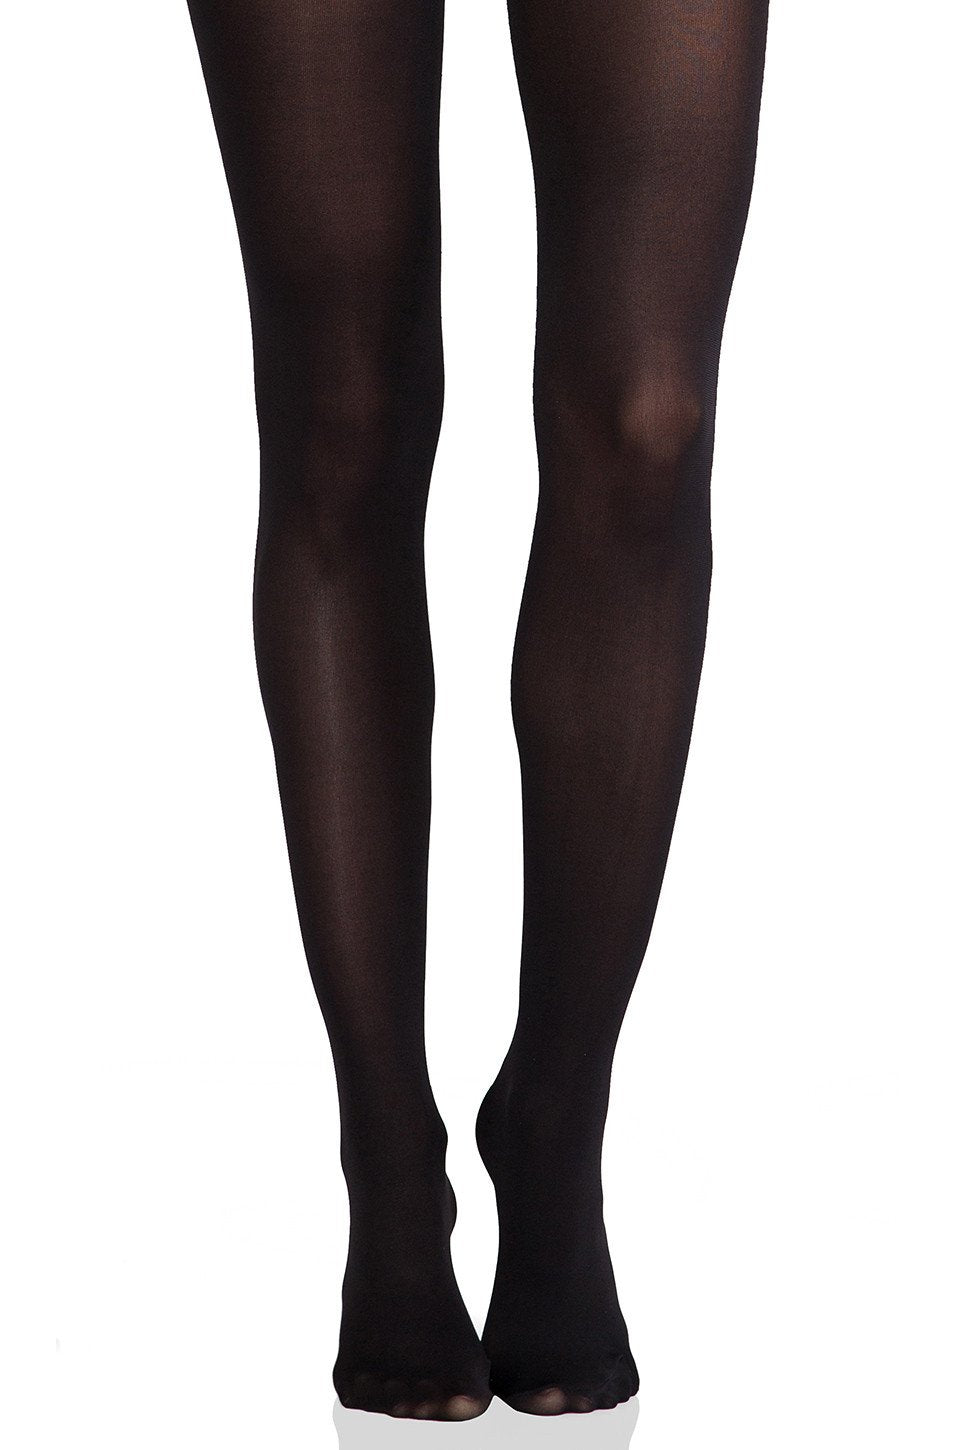 Black Hoisery Tights - Kustom Label - 1